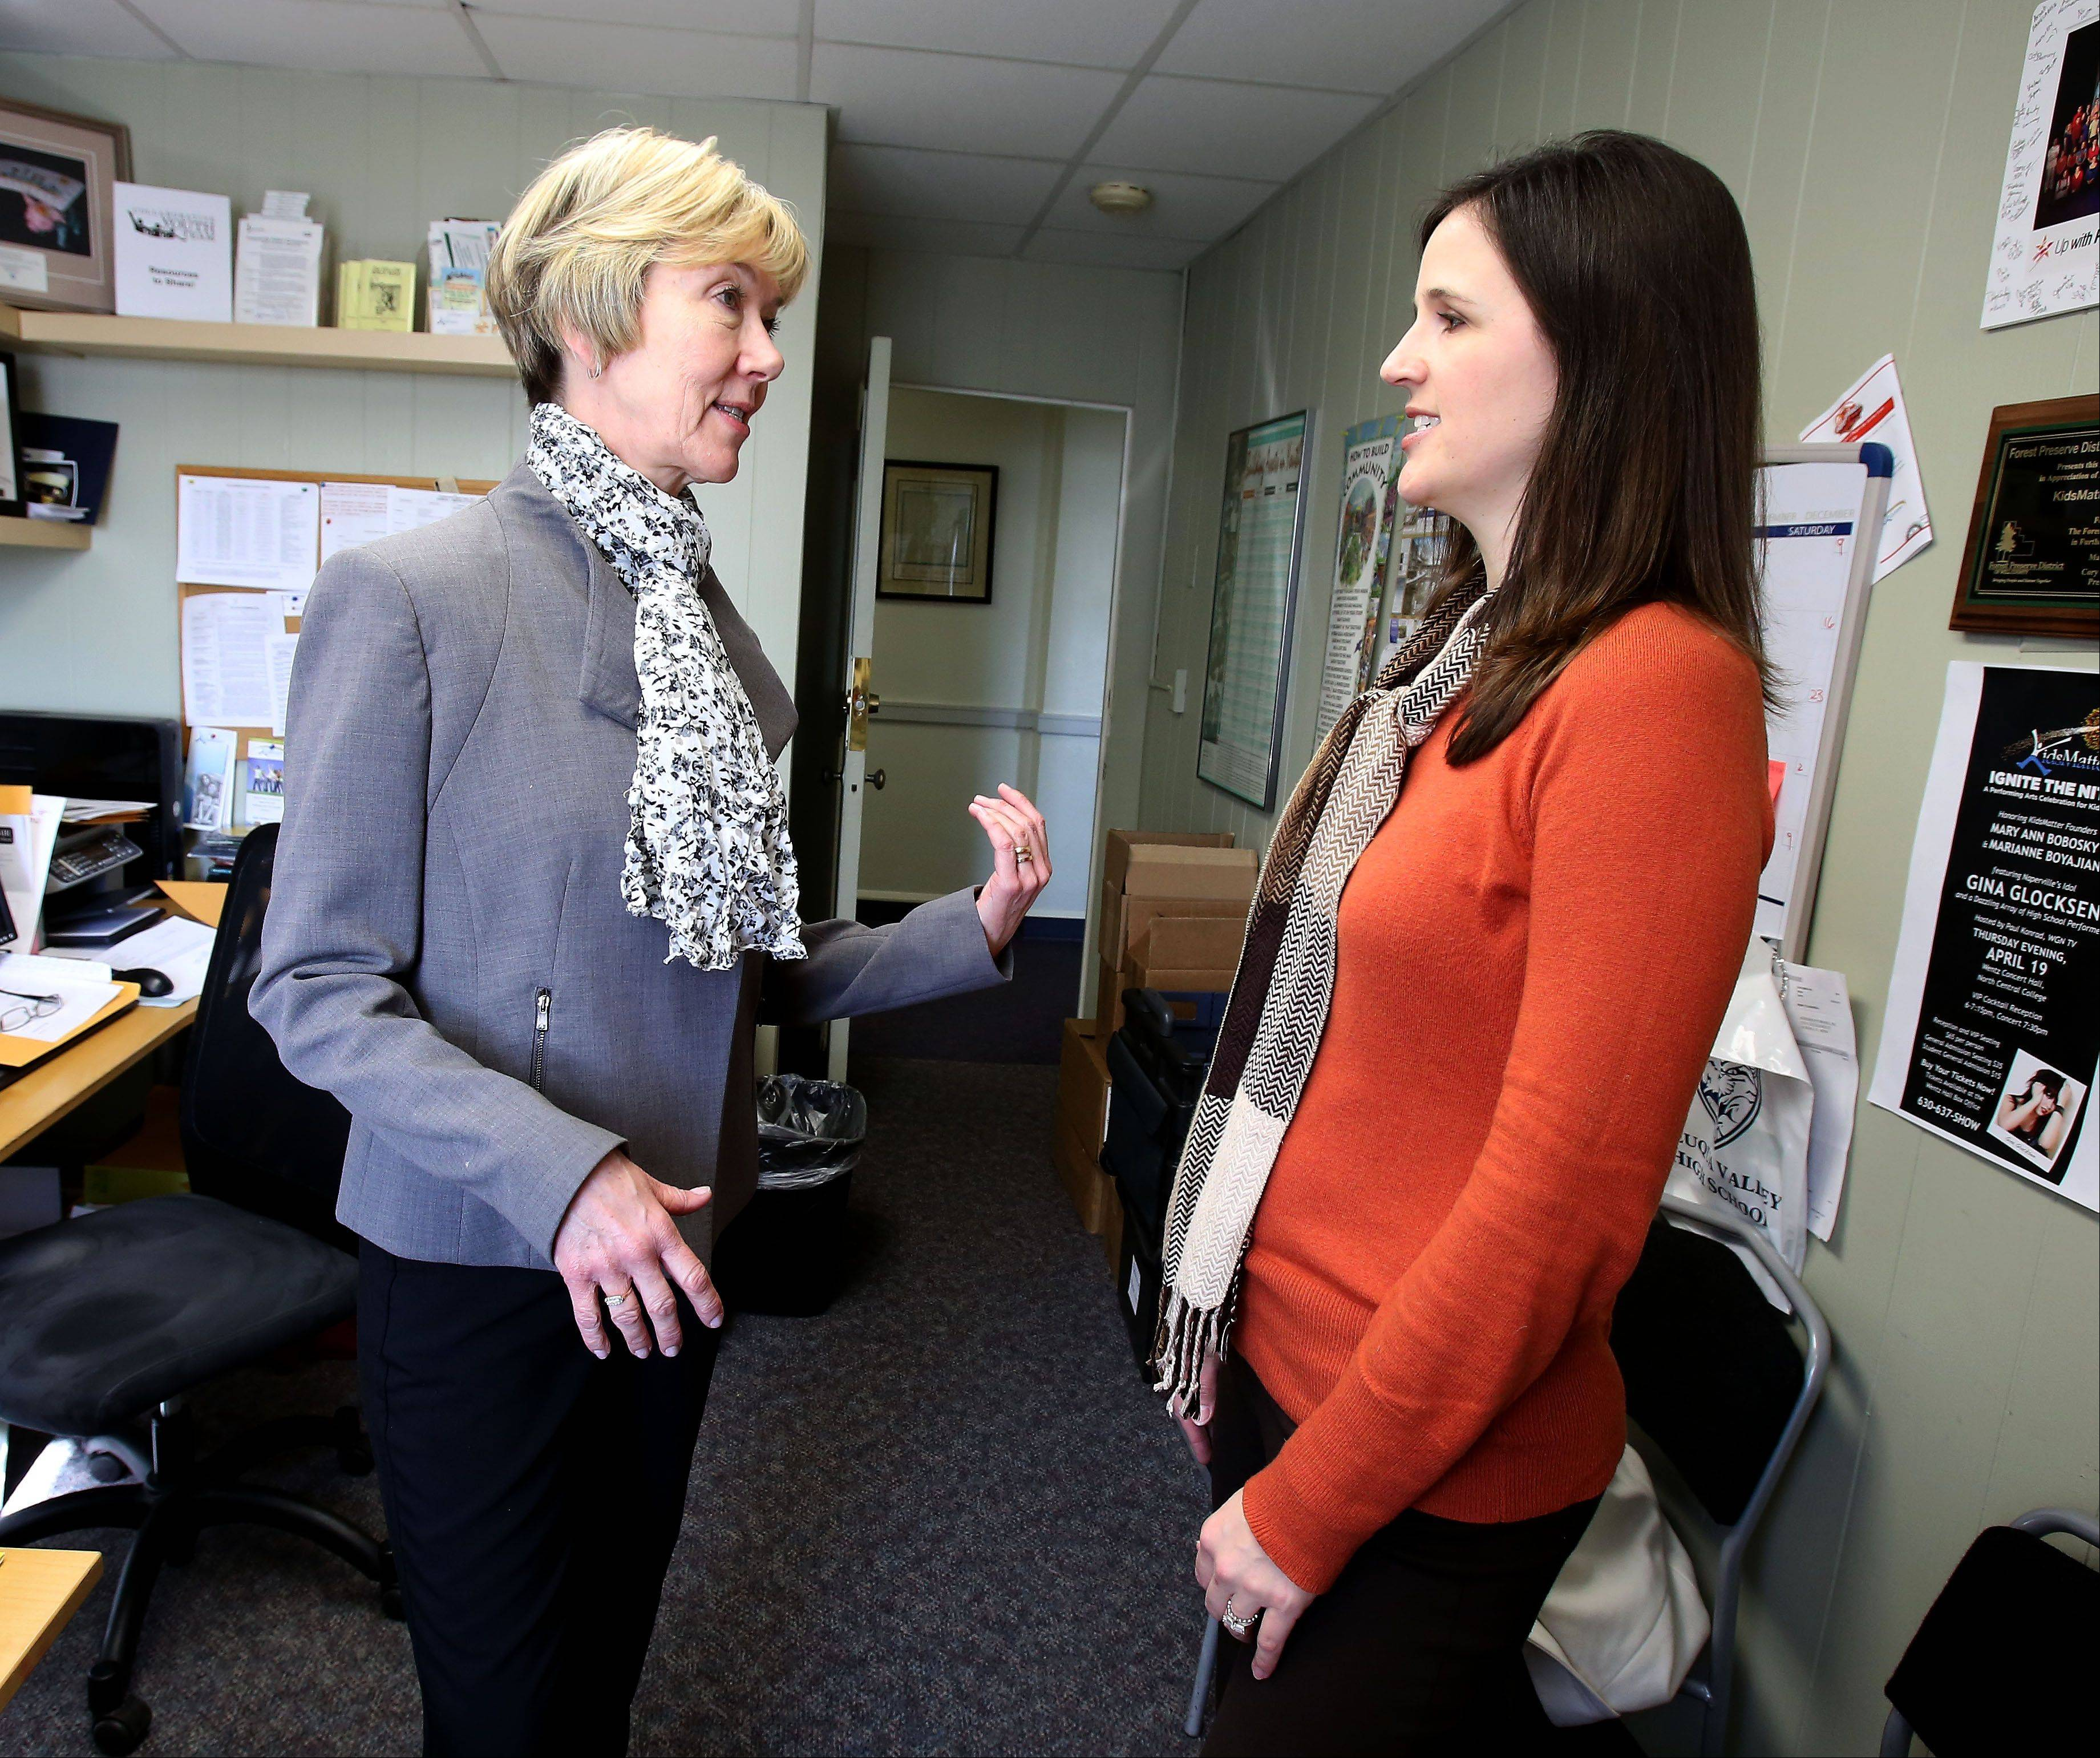 IdaLynn Wenhold, left, executive director of KidsMatter in Naperville, chats with Marion Ruthig, who started I Support Community. Wenhold believes that the video Ruthig's organization will shoot of KidsMatter may be the best way to reach the hearts of donors.